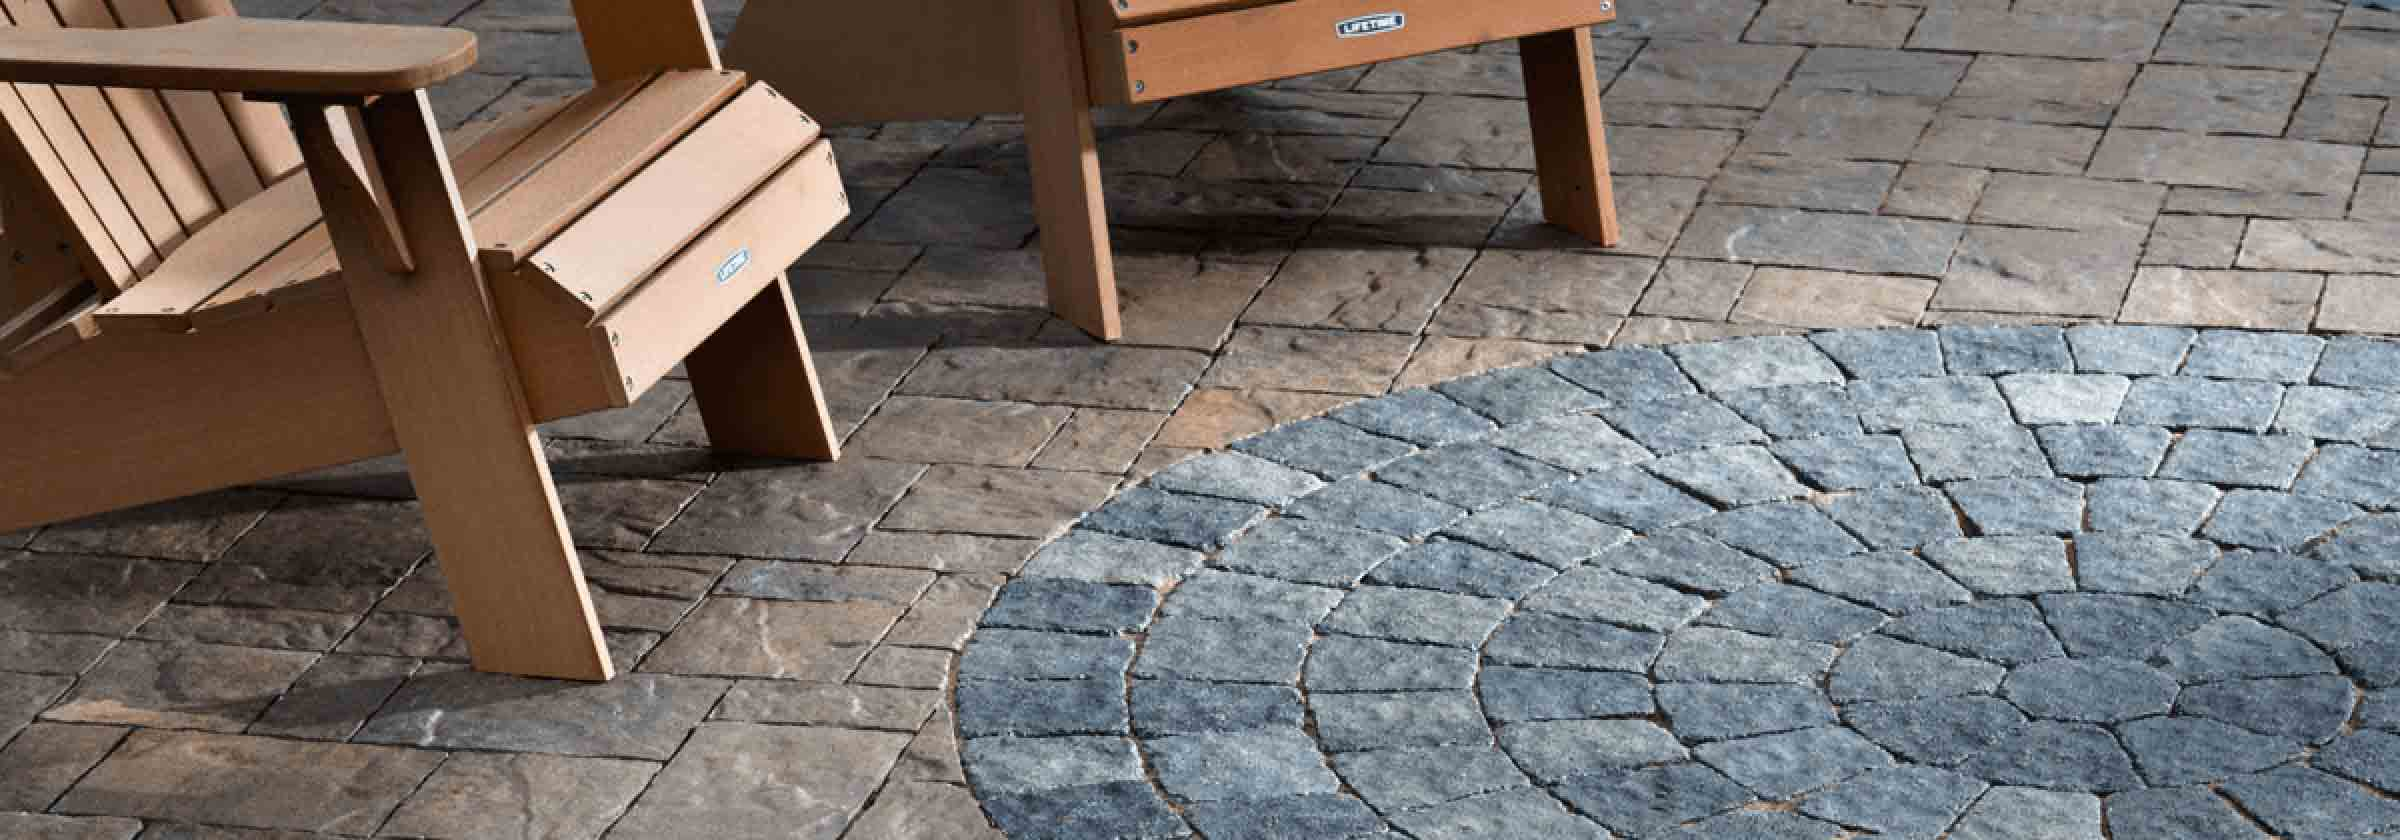 FAQ's - Stone Pavers on a Back Patio Porch